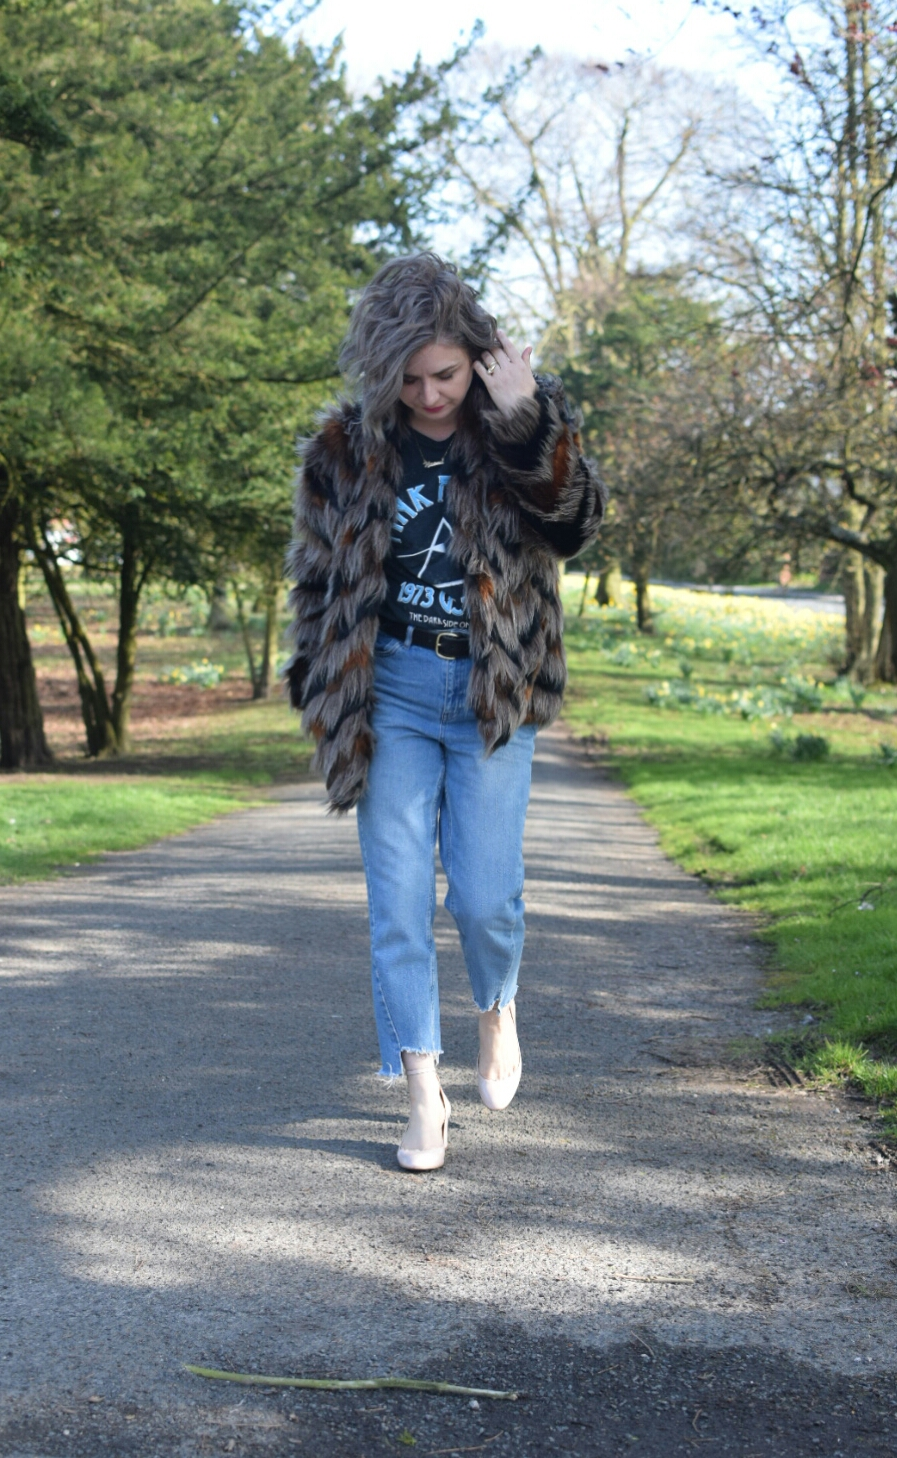 Kaleidoscope Faux Fur Coat, Topshop Highwaisted Jeans, Primark Band tee, Topshop Mary Janes Journey Shoes.